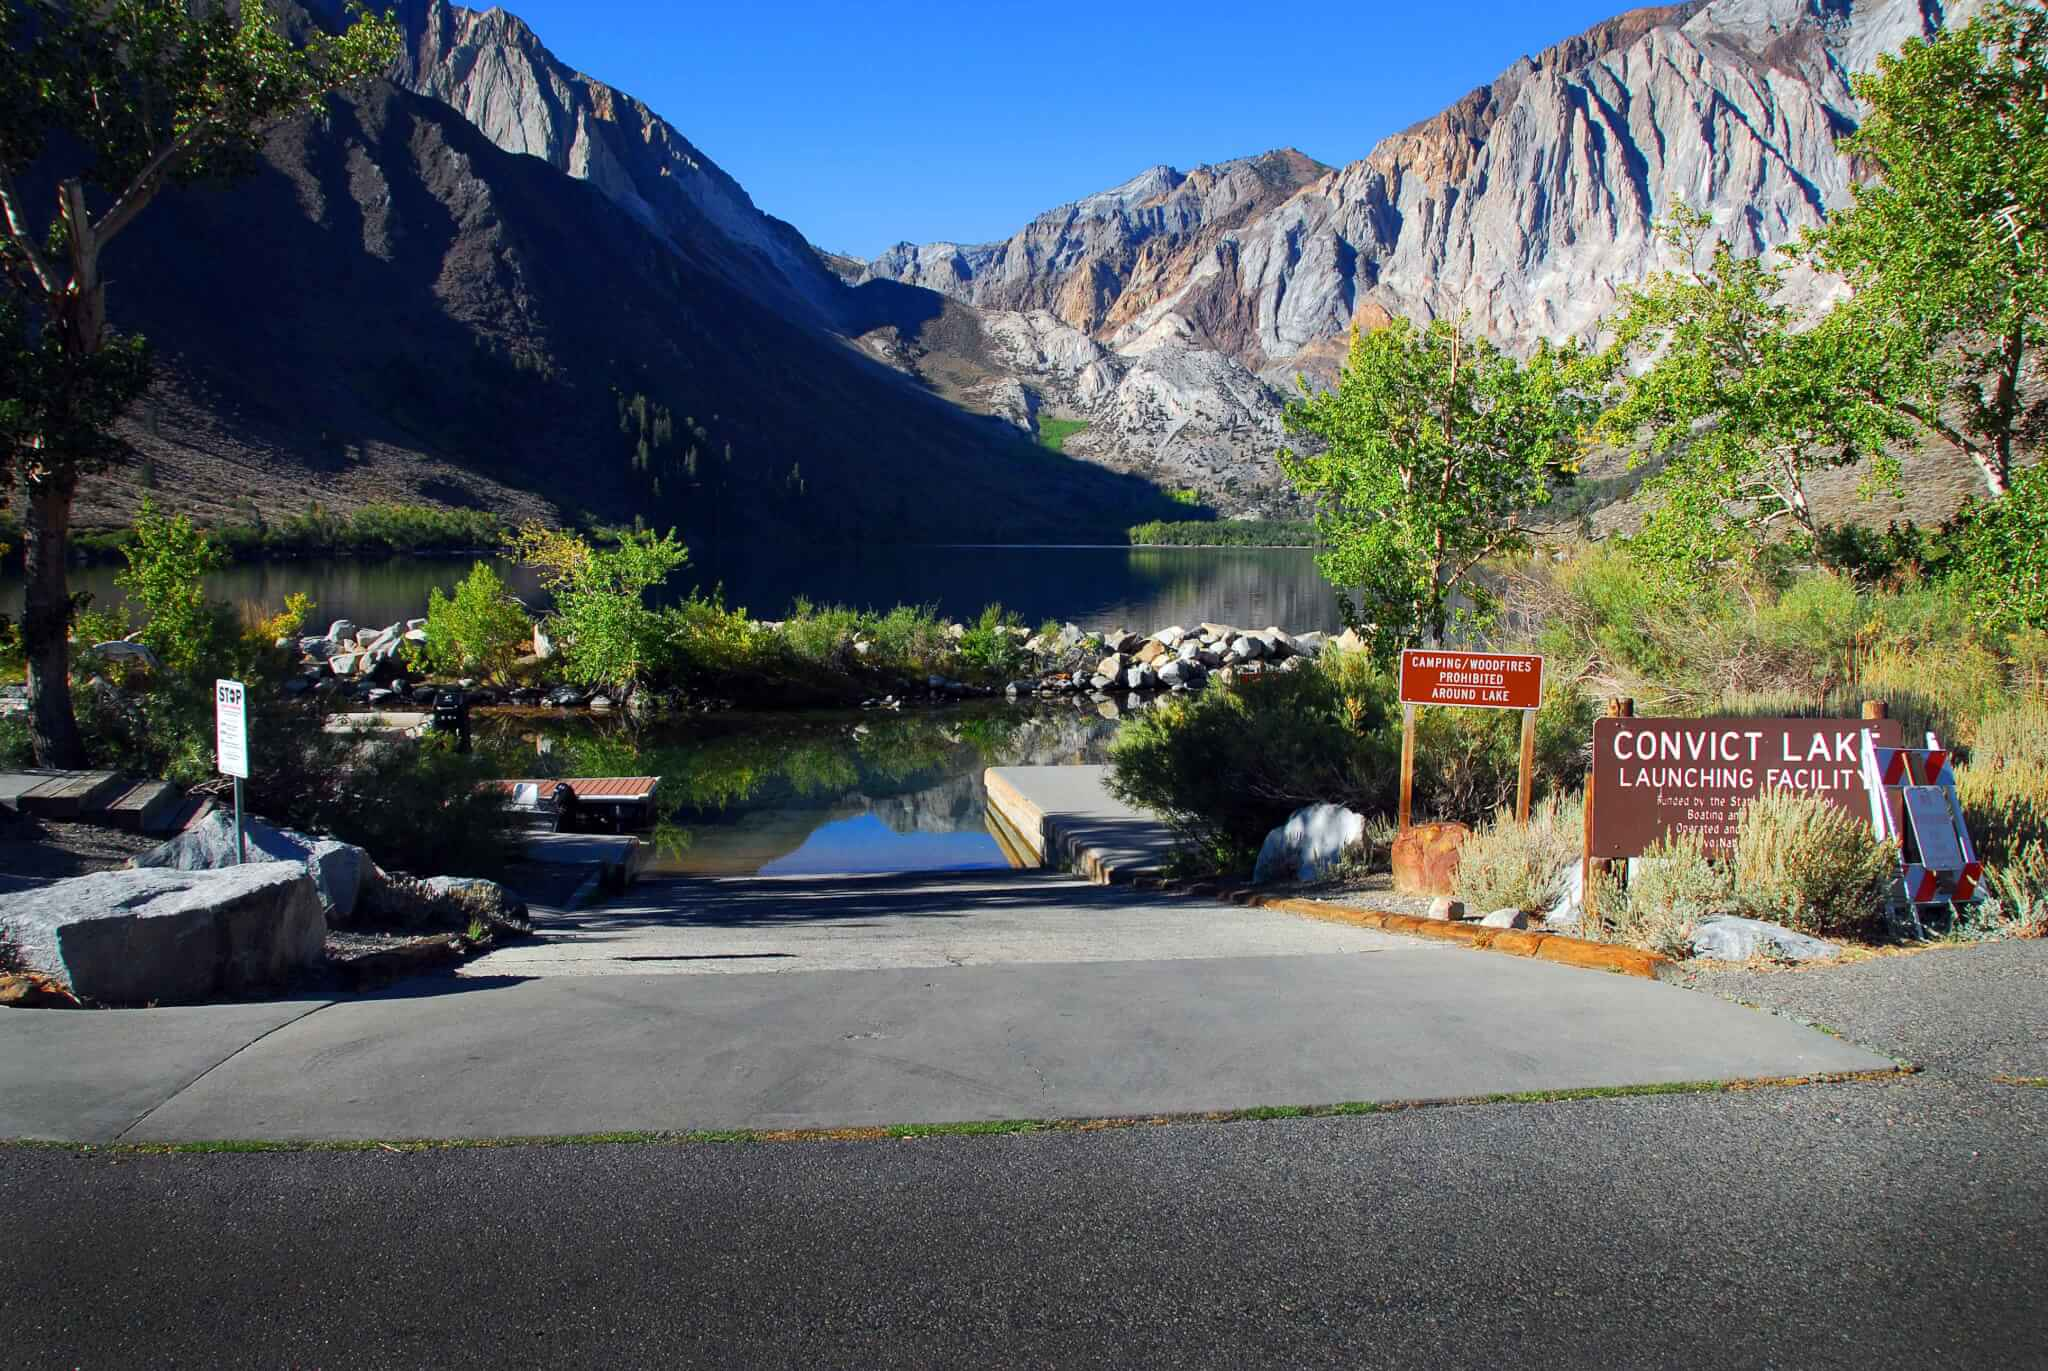 The Best Mammoth Lakes Area Campgrounds Convict Lake Boat Ramp